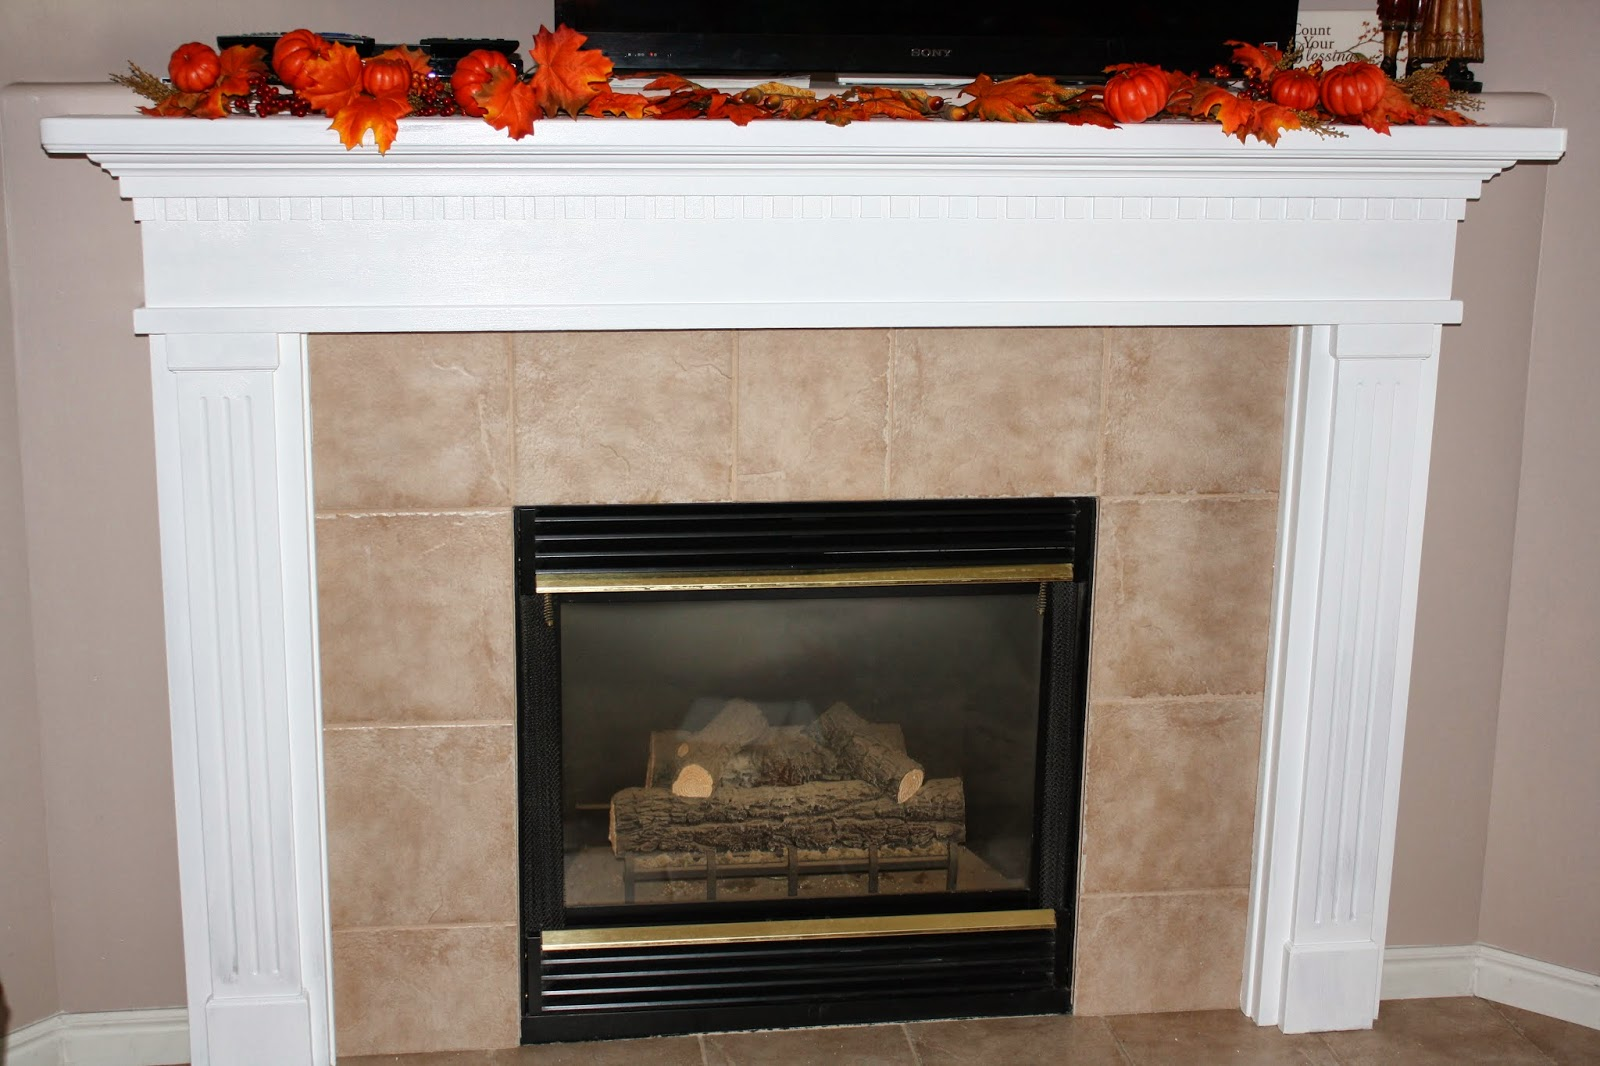 Diy fireplace surround and mantel fireplace design ideas Fireplace surround ideas